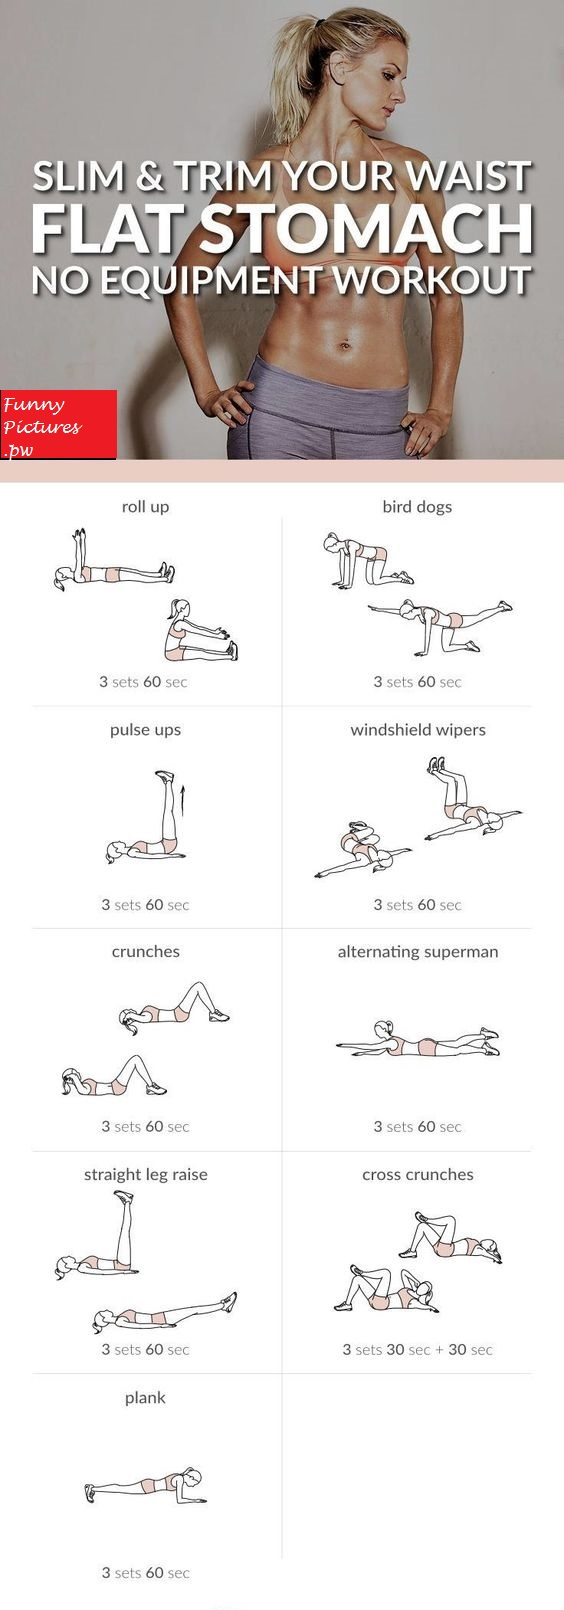 Easily whip your tummy into shape